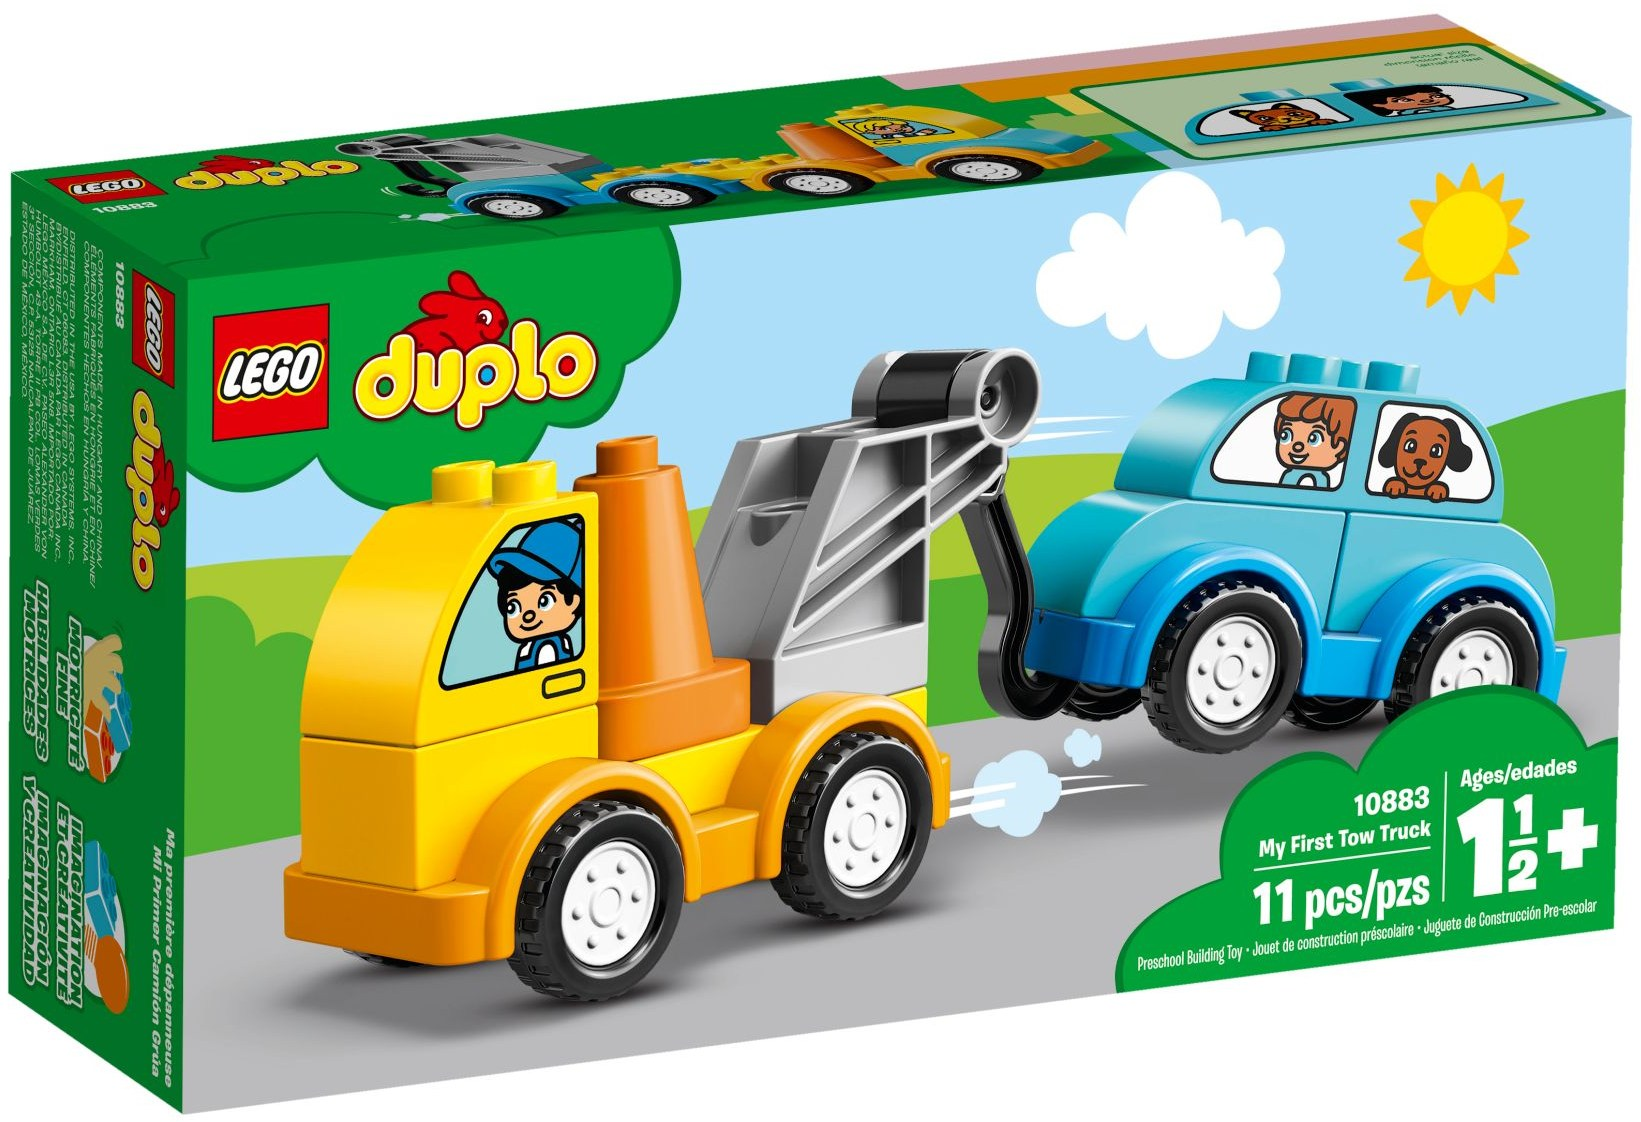 10883 My First Tow Truck